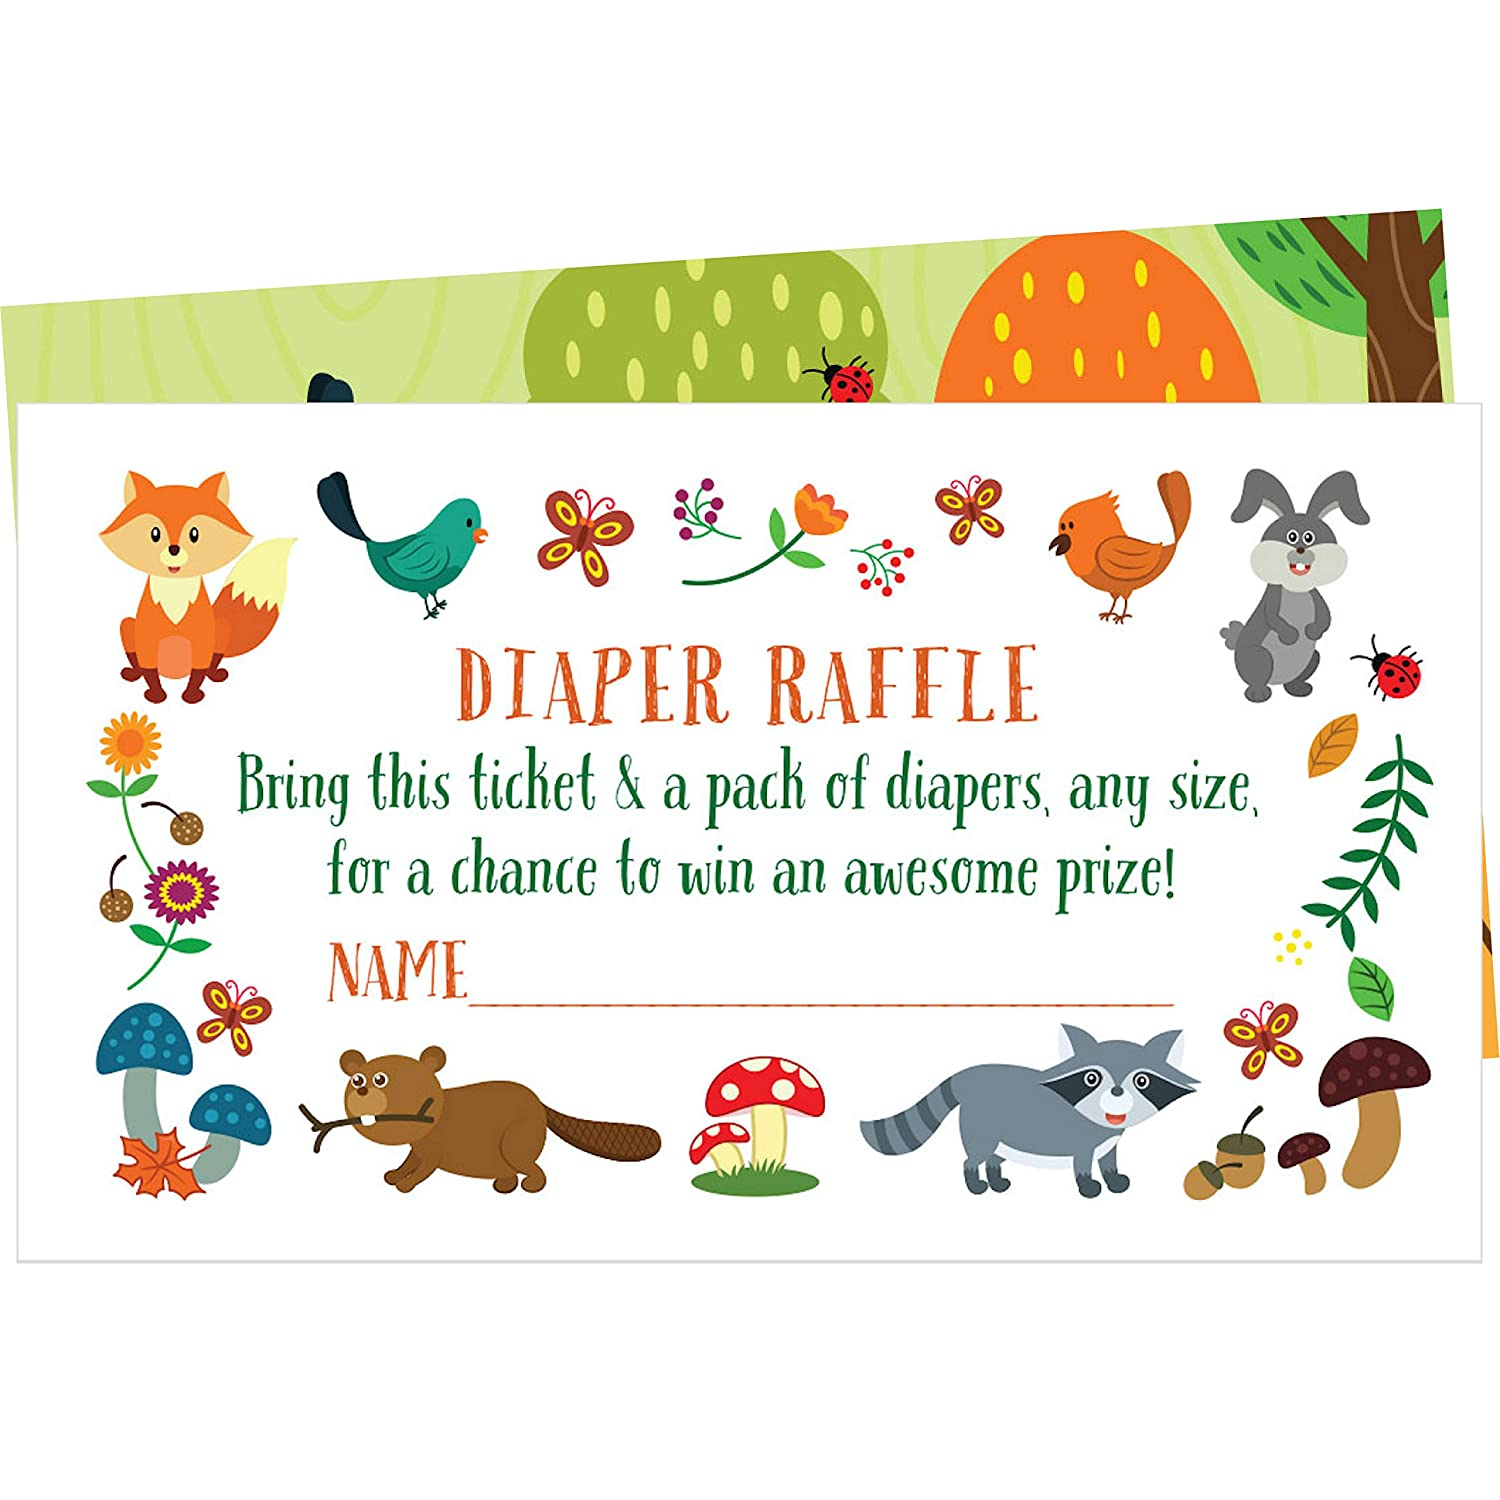 50 Woodland Creatures Diaper Raffle Tickets - Create a Fun Baby Shower Game with These Diaper Raffle Cards